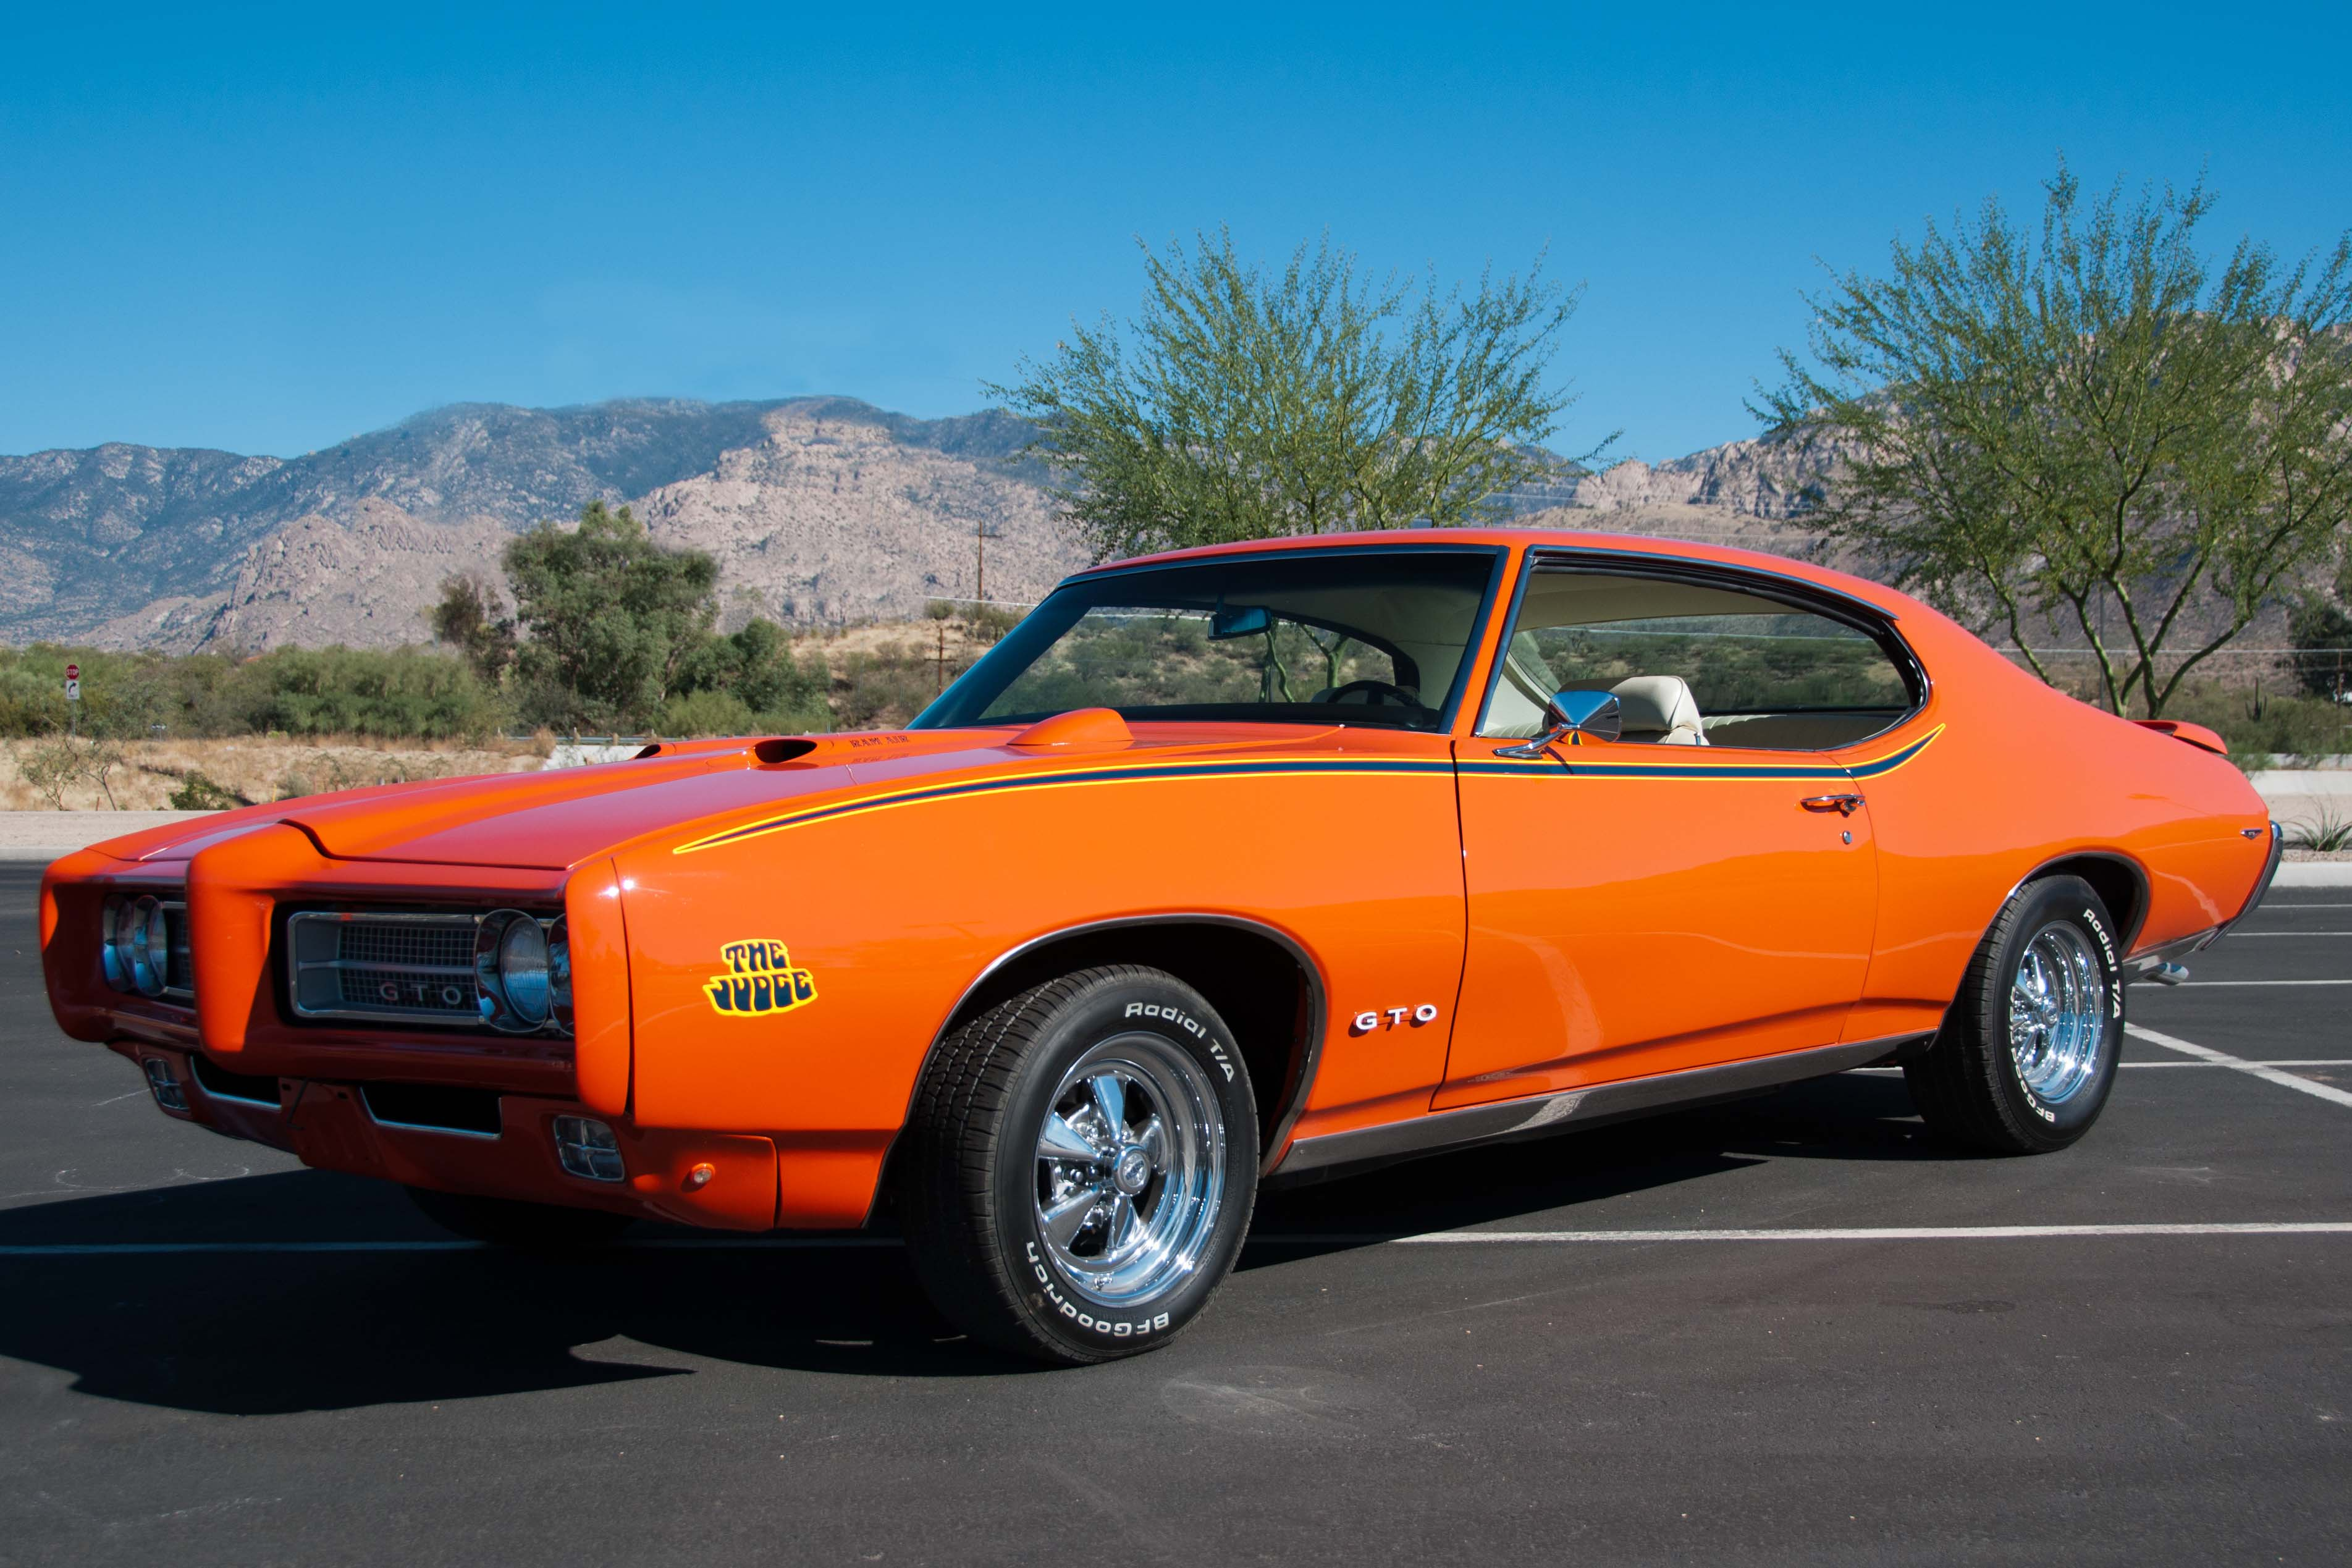 Pontiac Gto Wallpapers Pictures Images